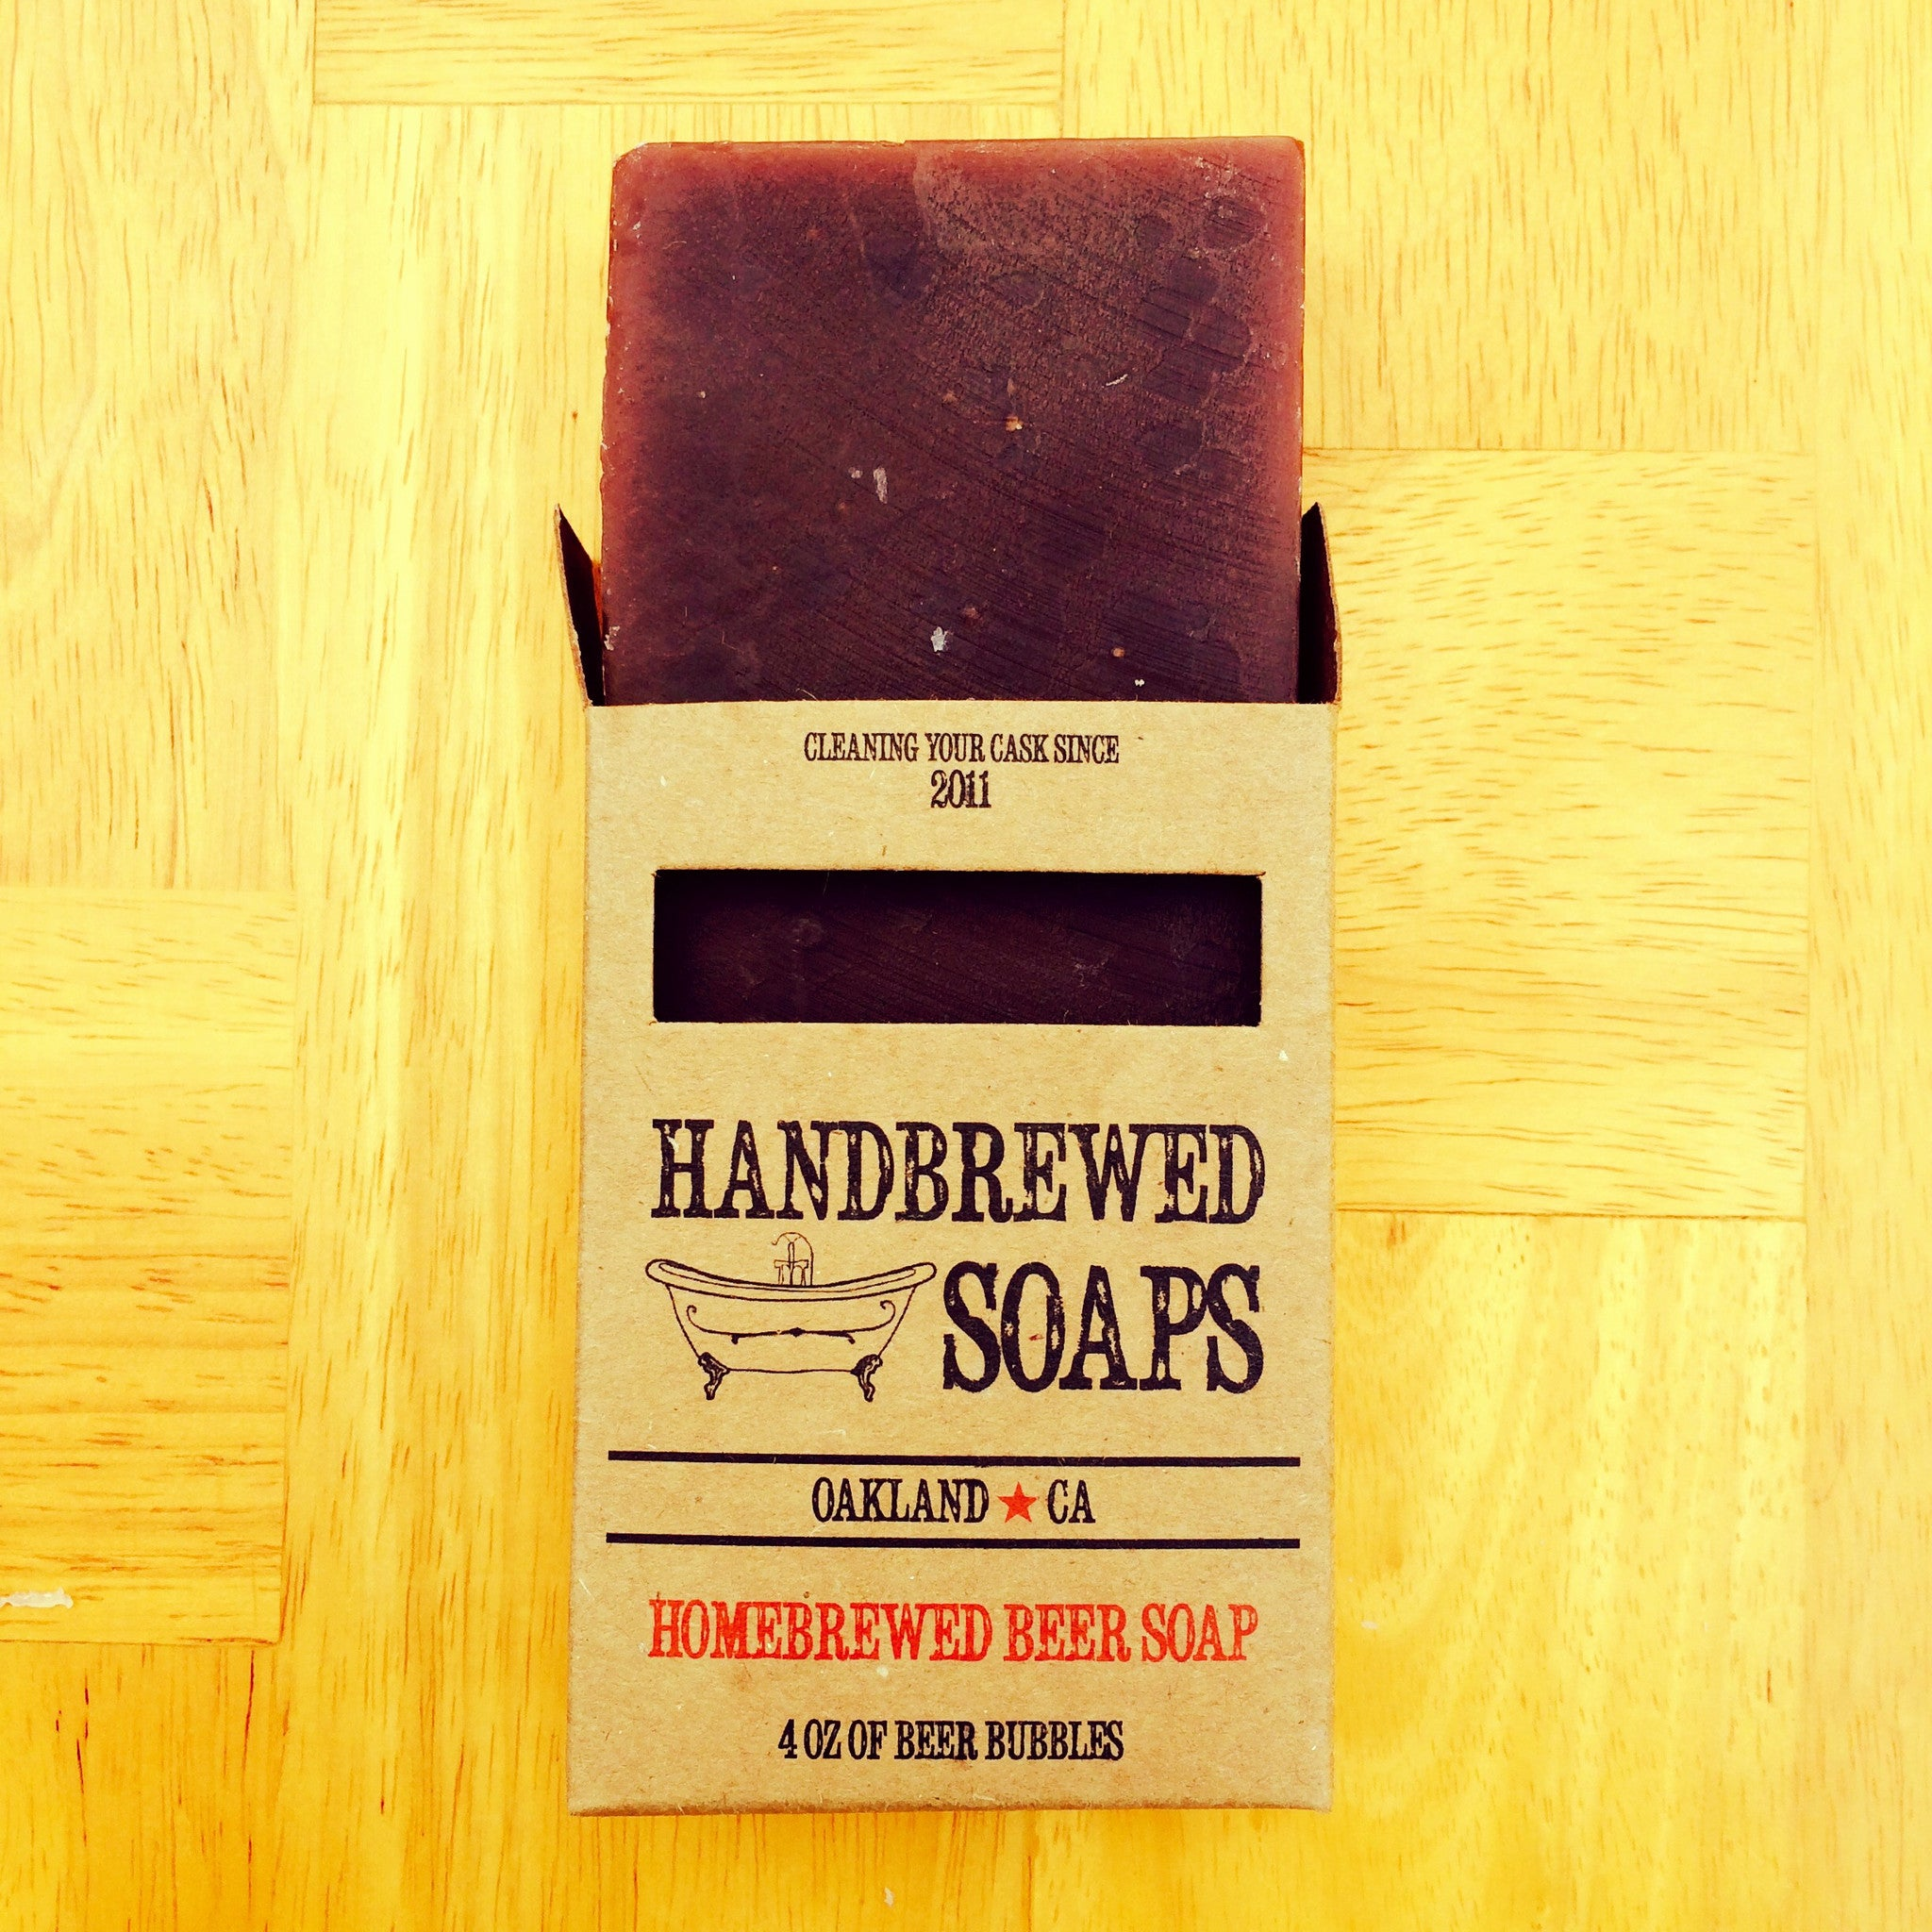 Homebrewed Oatmeal Stout Beer Soap, beer soap